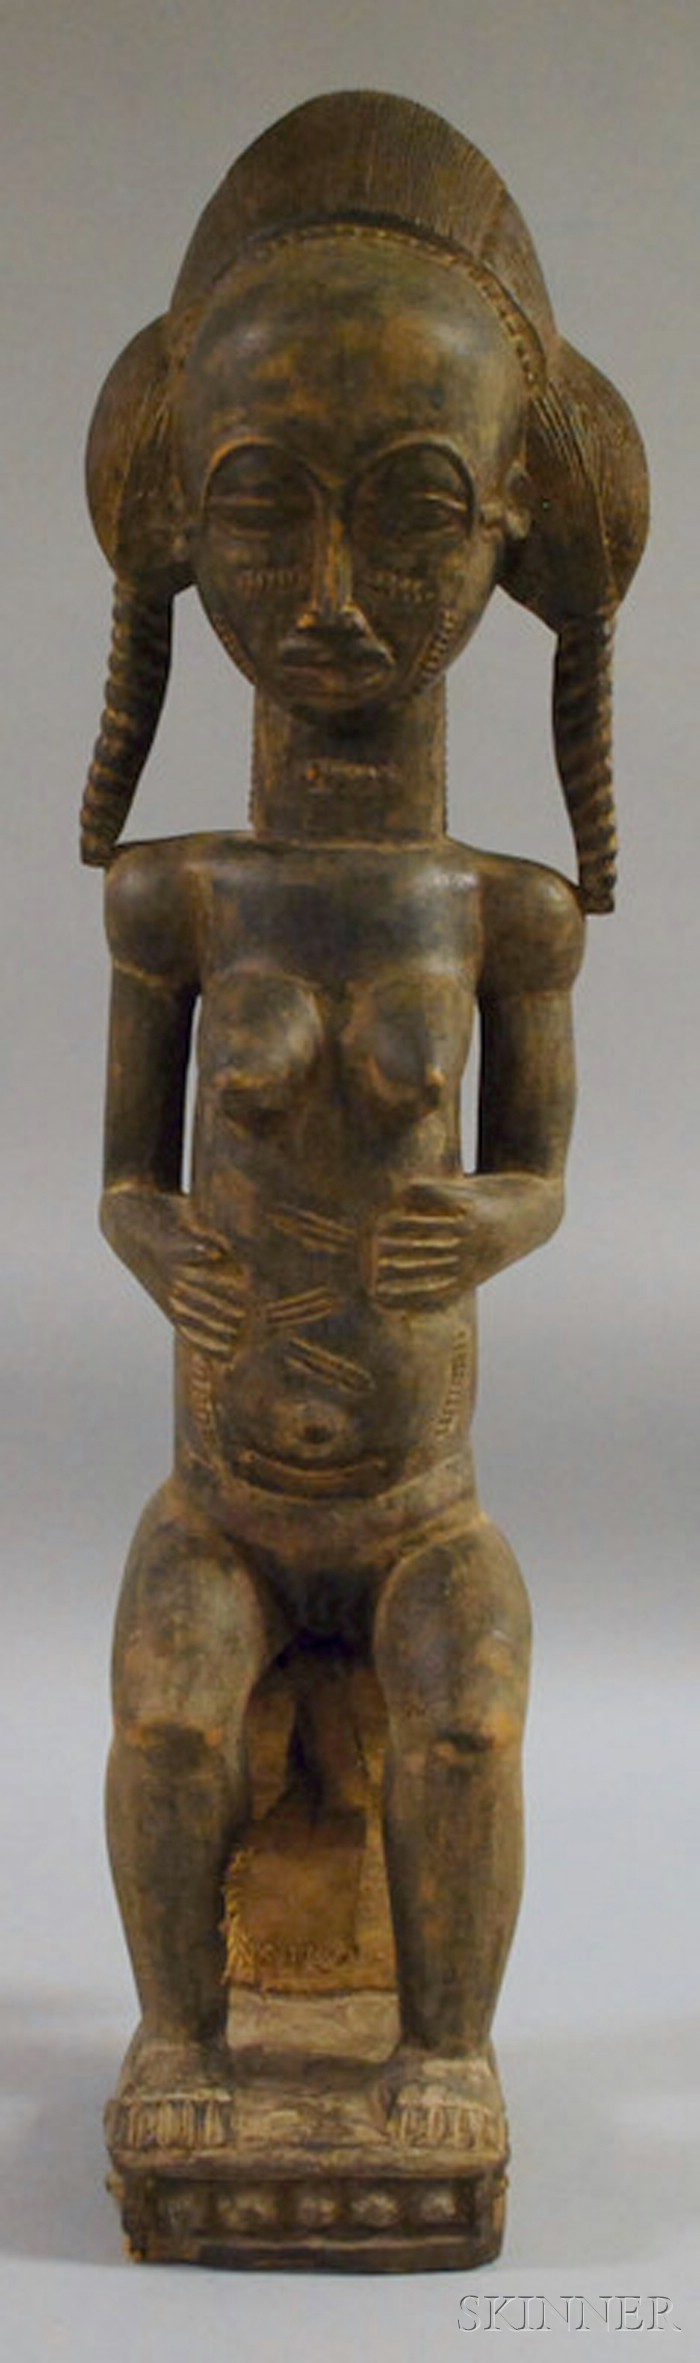 African Bauli-style Carved Wood Figure